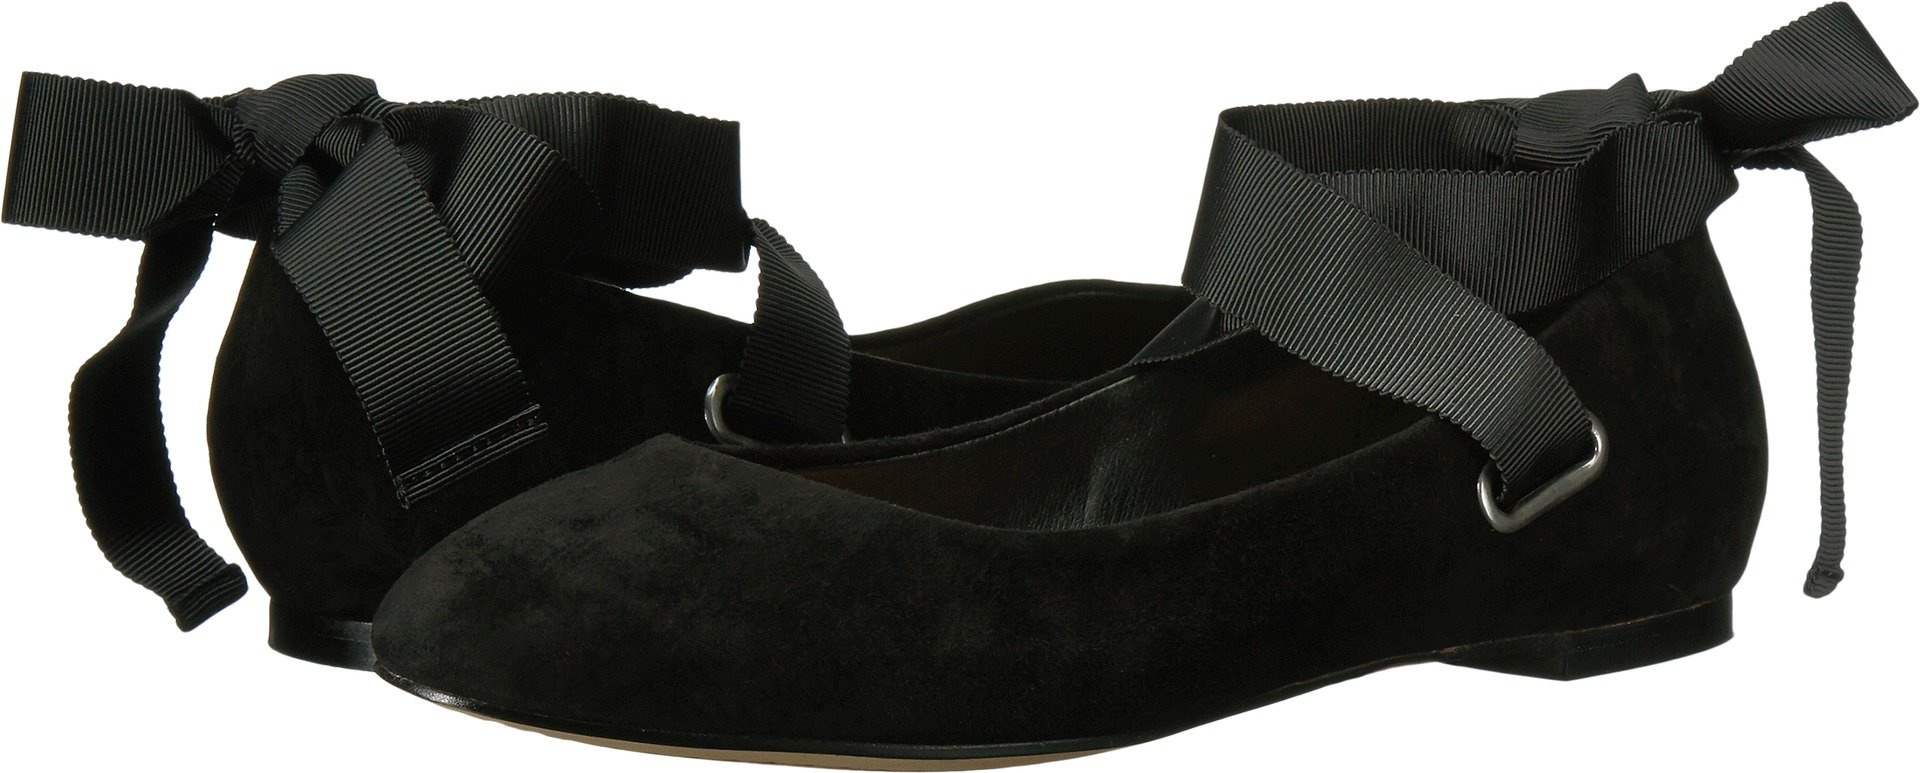 Splendid Women's Renee Ballet Flat, Black, 8.5 M US